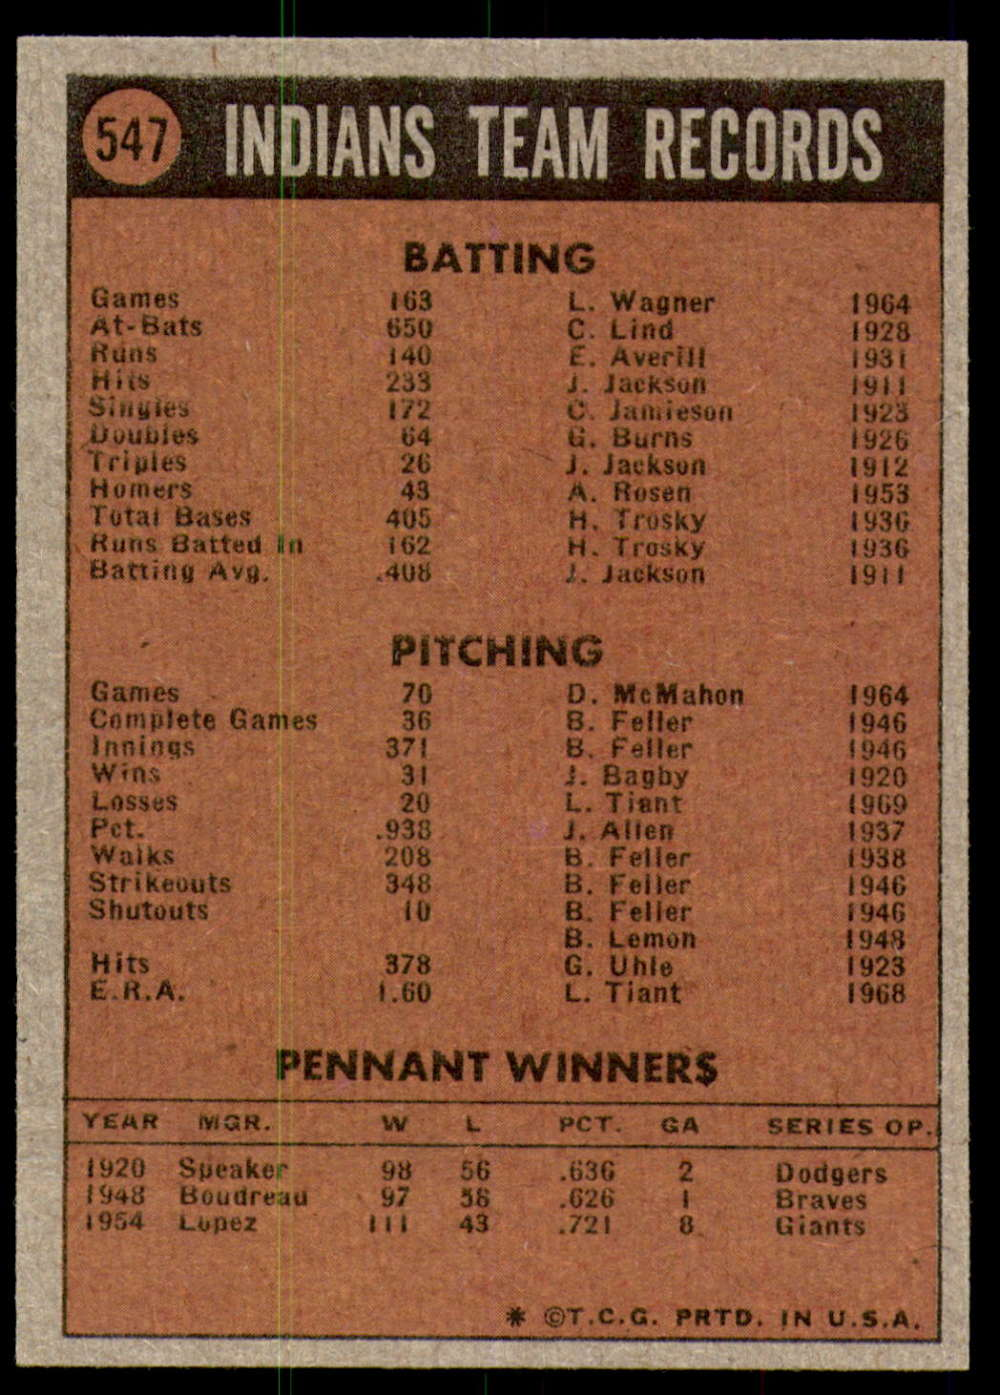 1972-Topps-Baseball-Set-497-787-Pick-Your-Card-Each-Card-Scanned-Front-amp-Back thumbnail 85